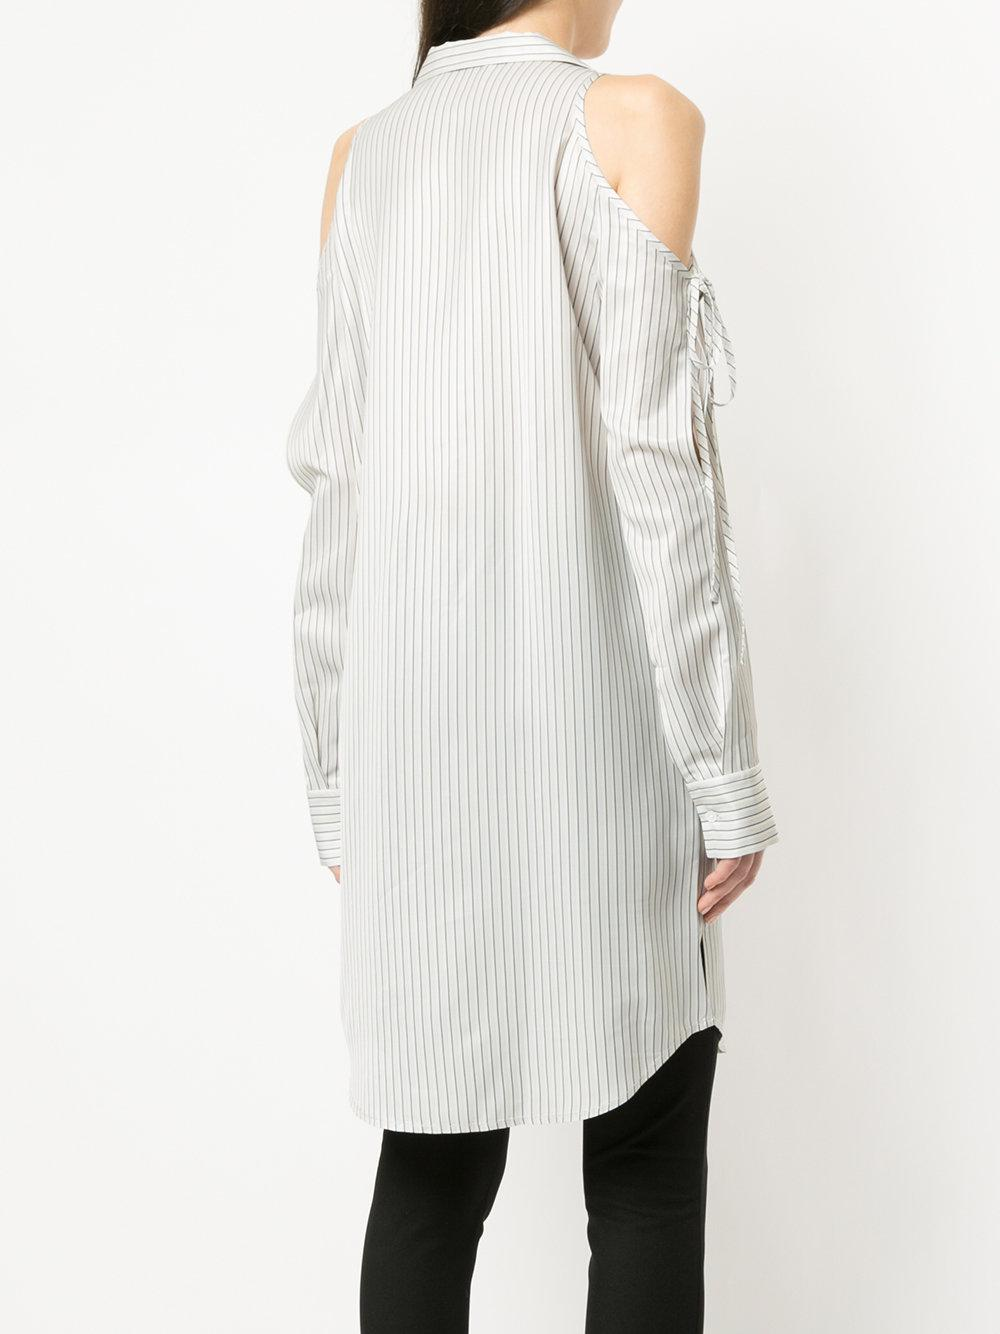 cold shoulder striped shirt - White Alexander Wang